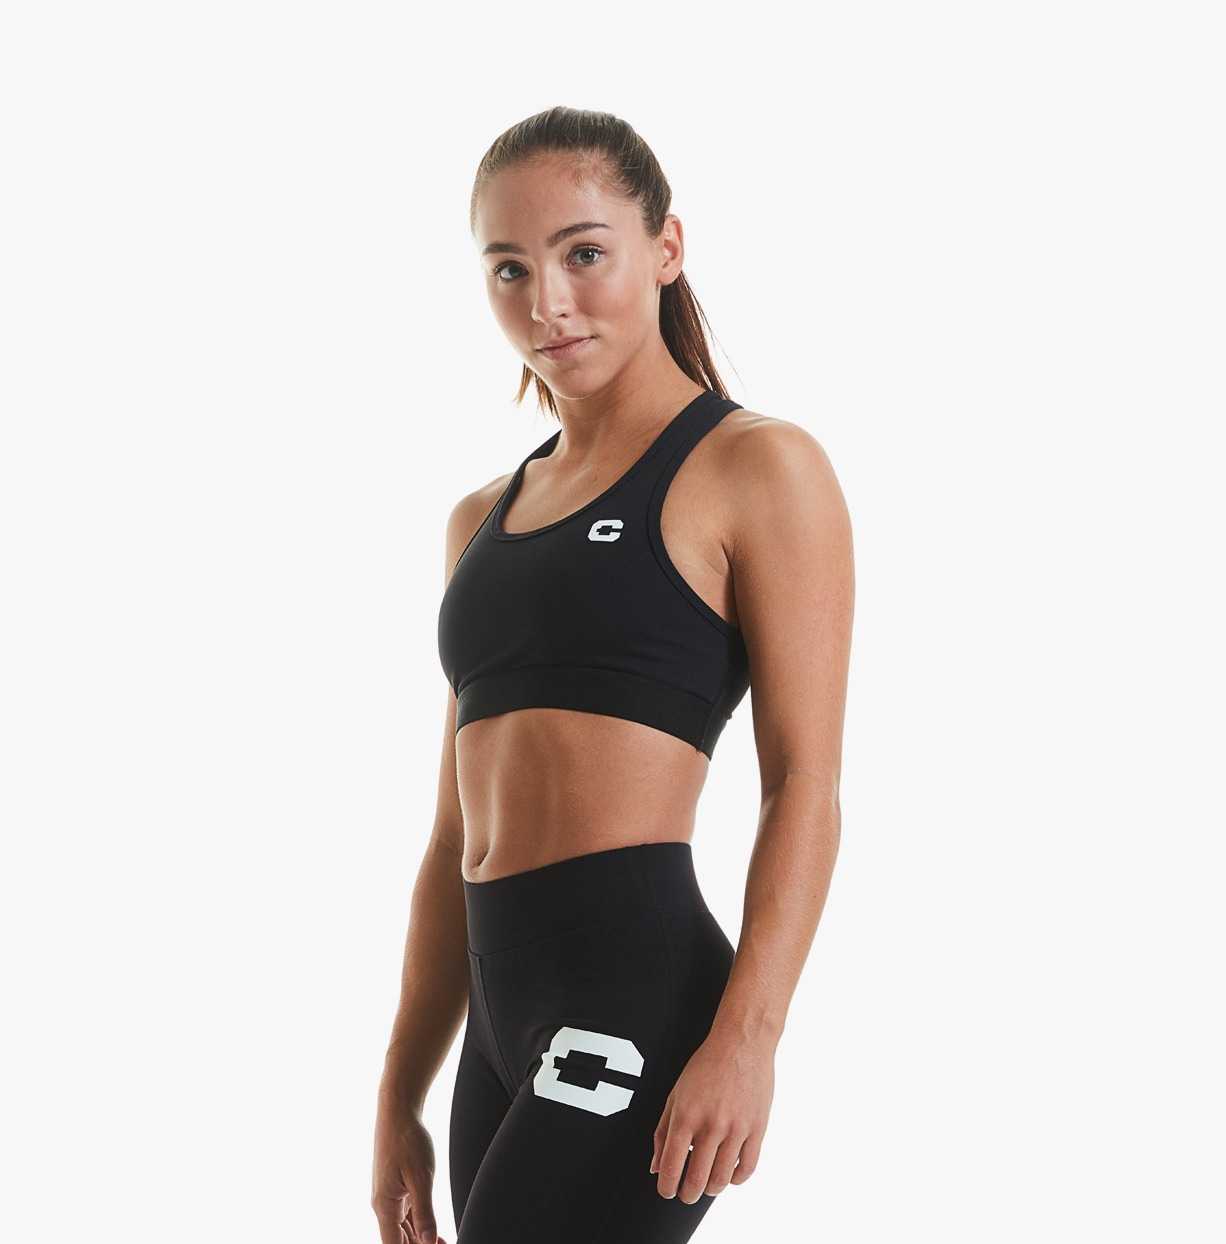 cln-rigid-sports-bra-black-detail